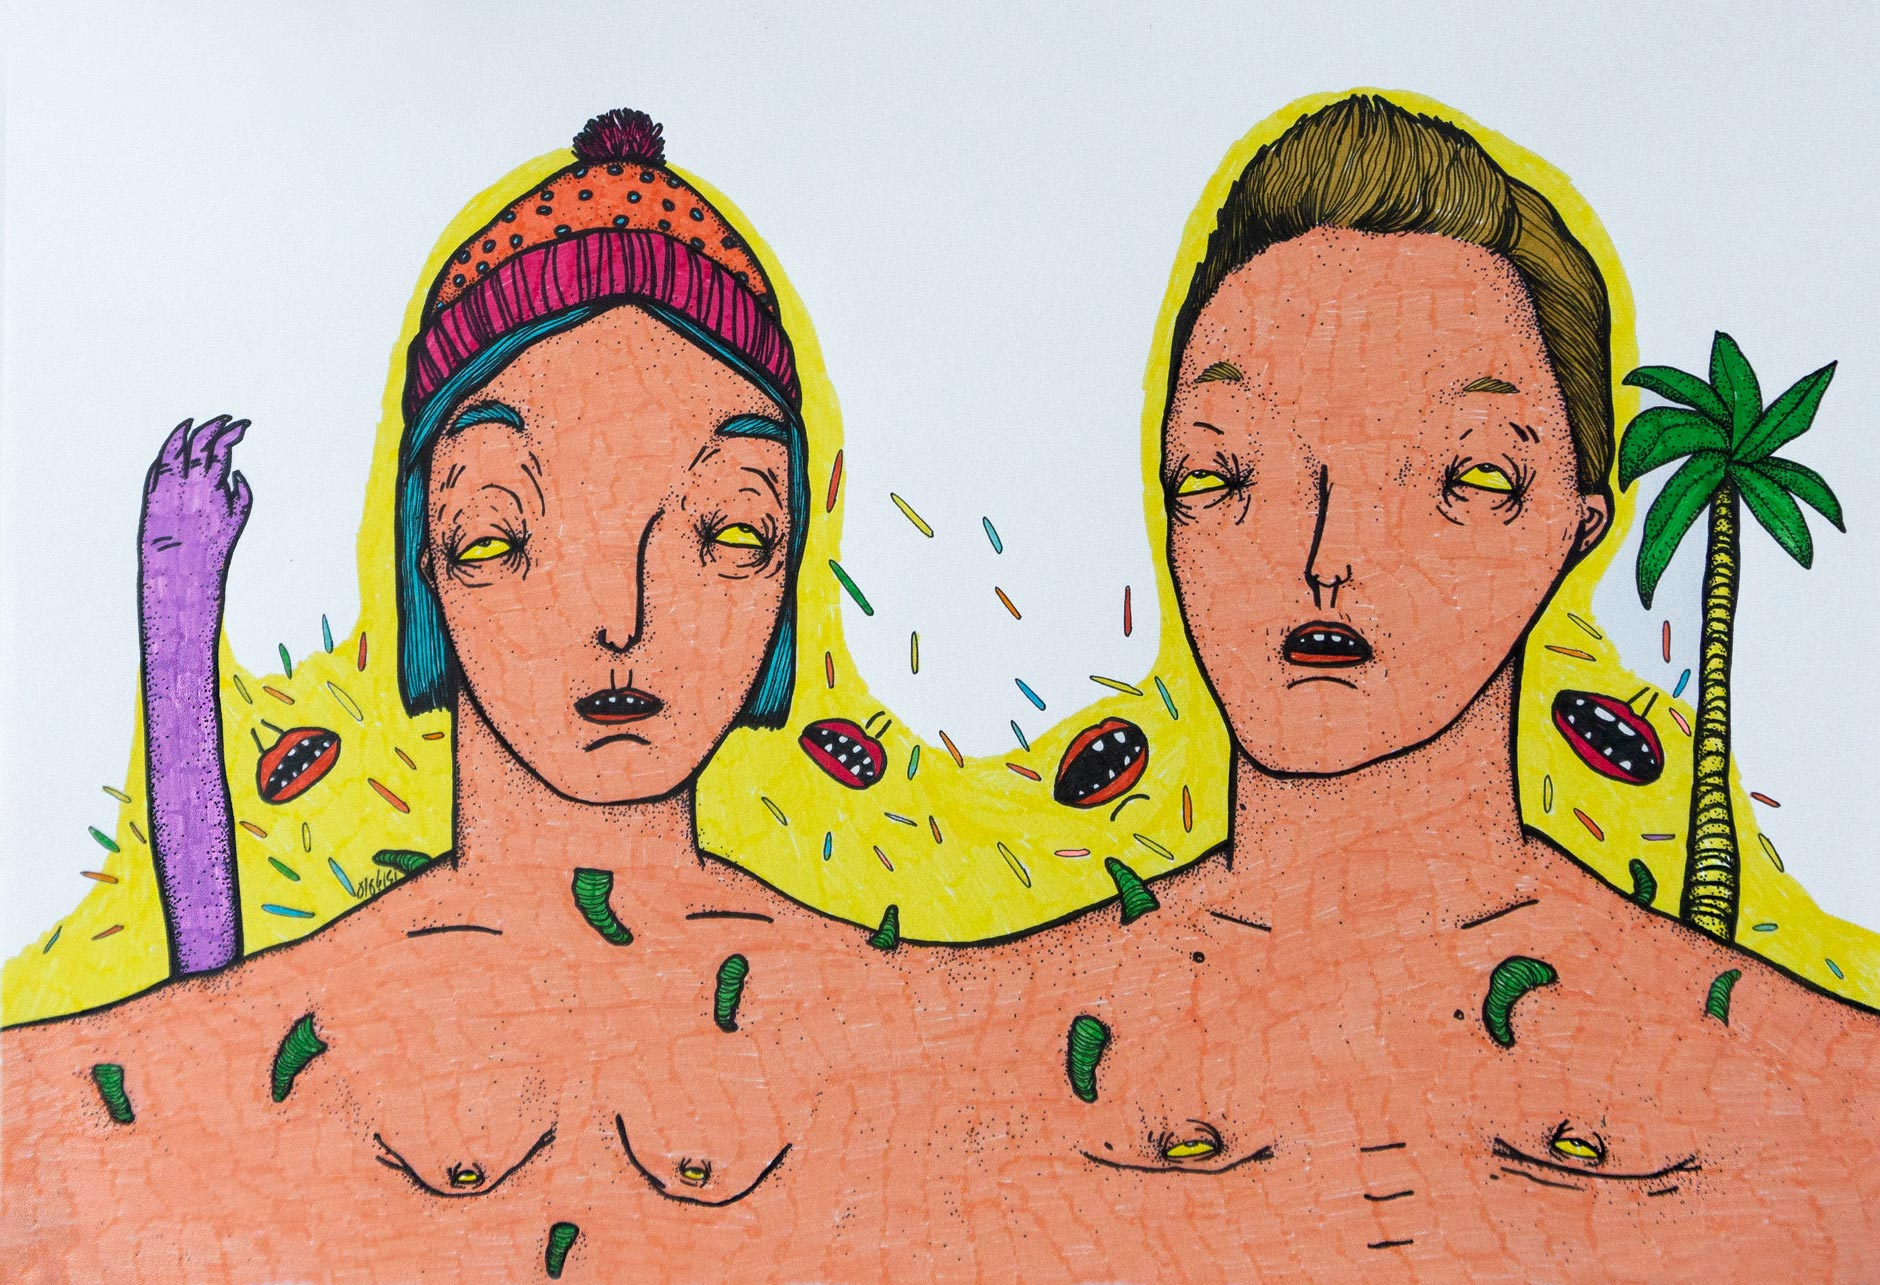 Soulmate | 21 x 29.5 cm | Marker and Pen on cardboard | 2016